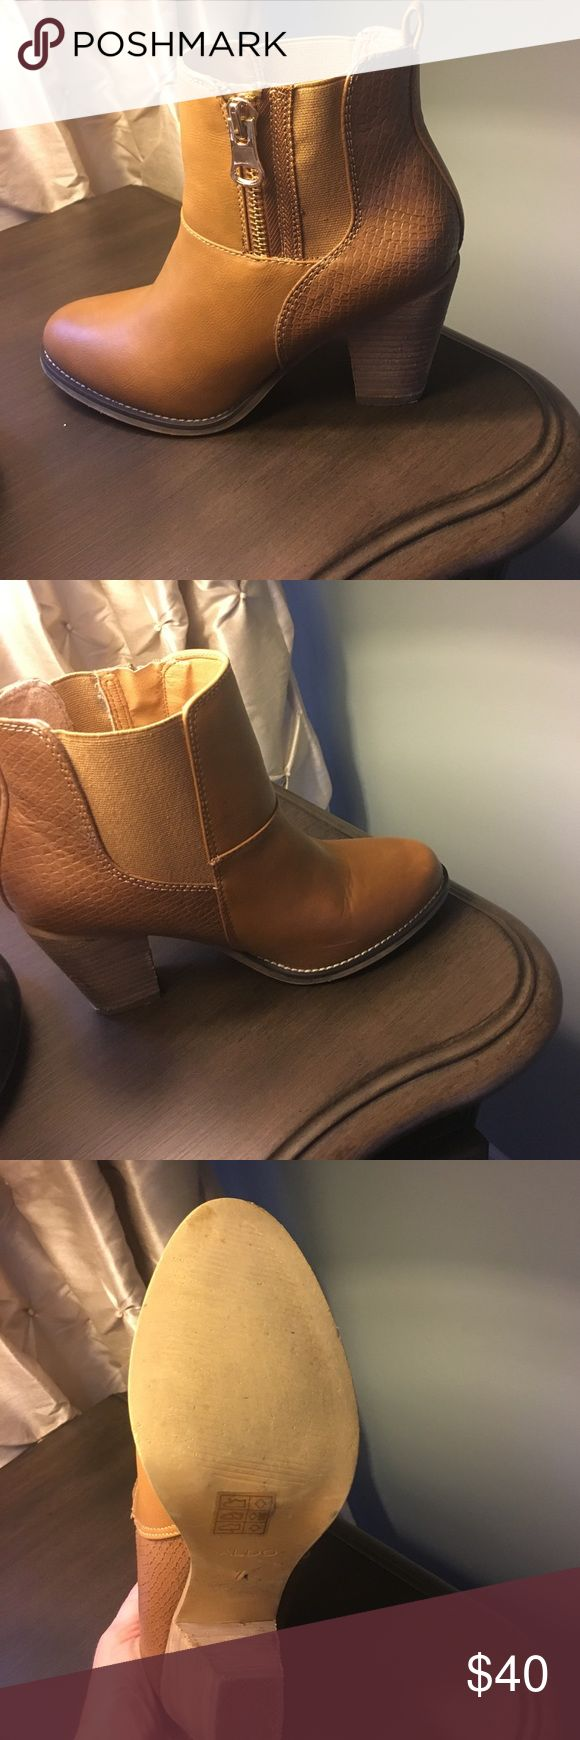 Aldo boots Camel color gold zipper Aldo boots.  Only worn once Aldo Shoes Ankle Boots & Booties